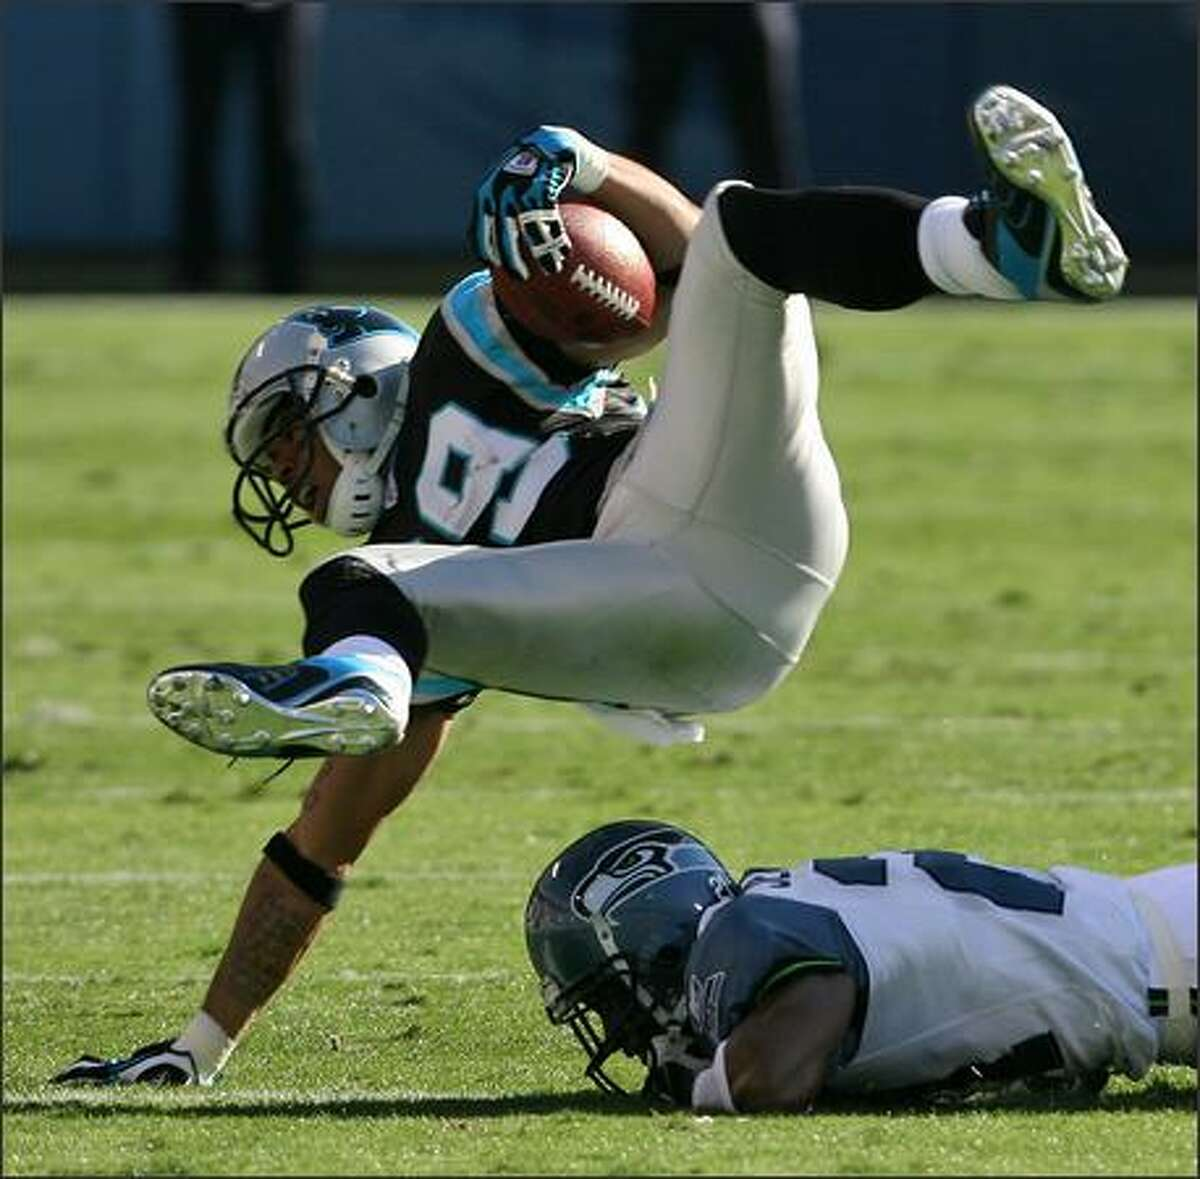 Carolina Panthers wide receiver Steve Smith is dropped for a loss of one yard by Seattle Seahawks cornerback Kelly Jennings during the first quarter.